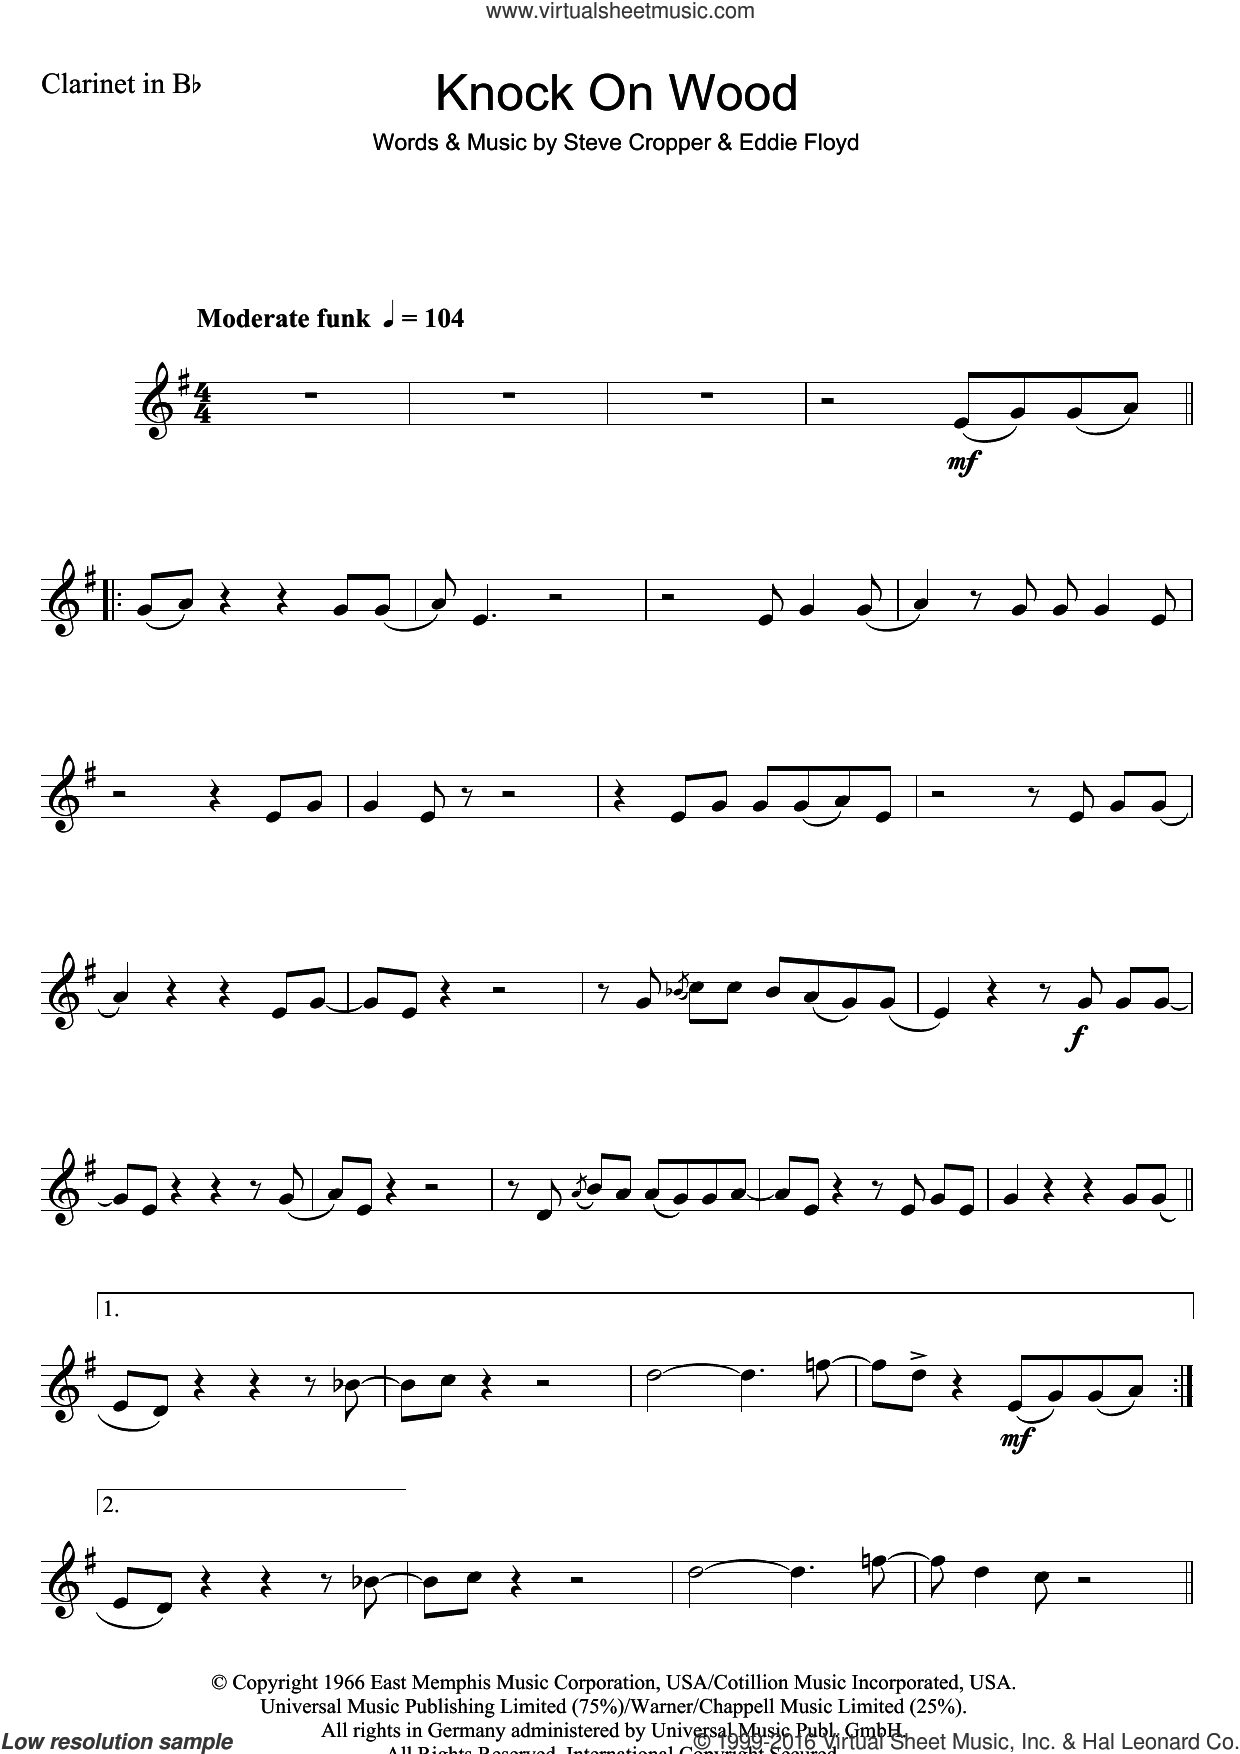 Knock On Wood sheet music for clarinet solo by Steve Cropper and Eddie Floyd. Score Image Preview.